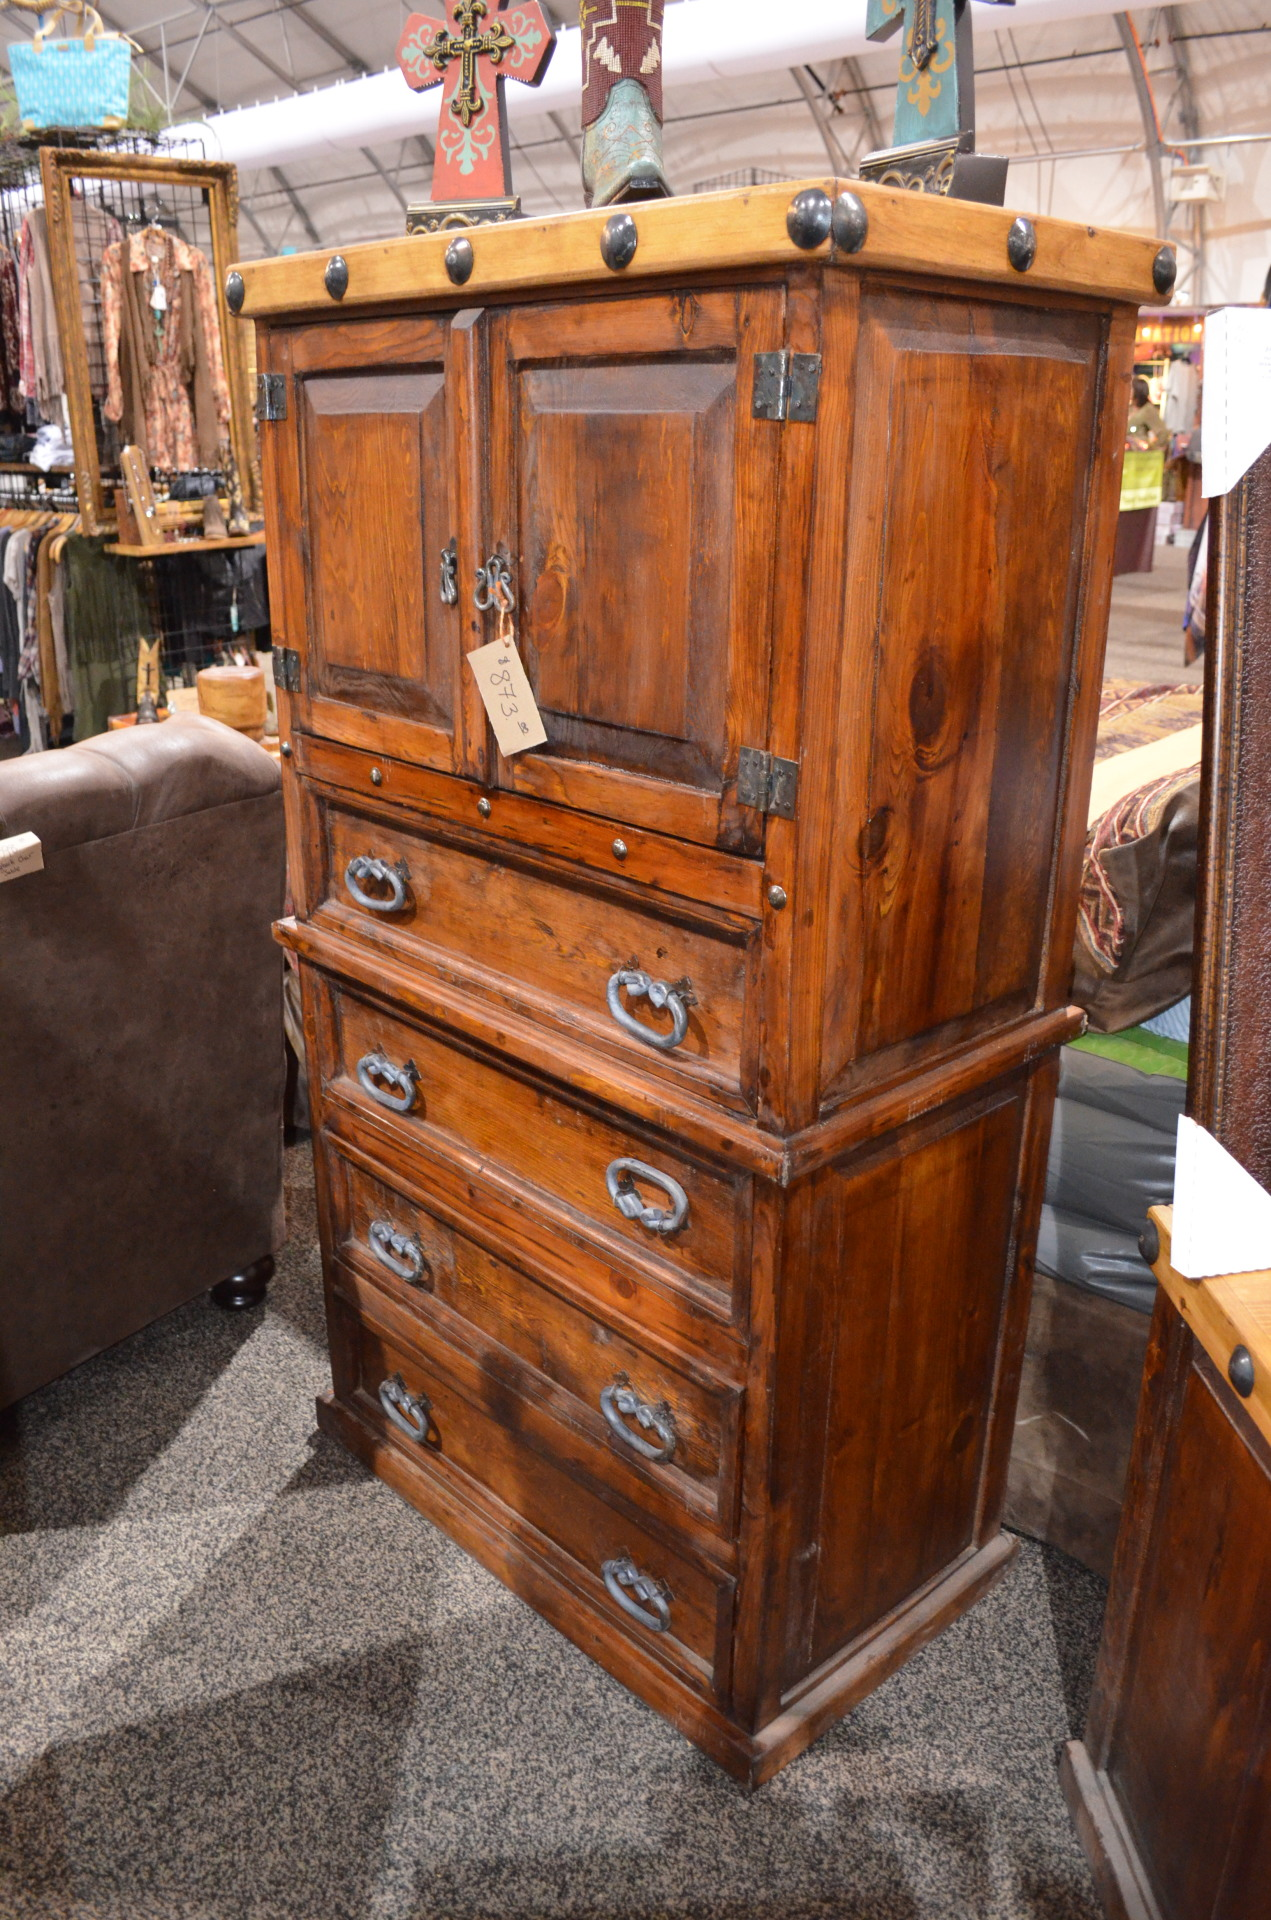 Don Carlos Nogal/Walnut Chest $873